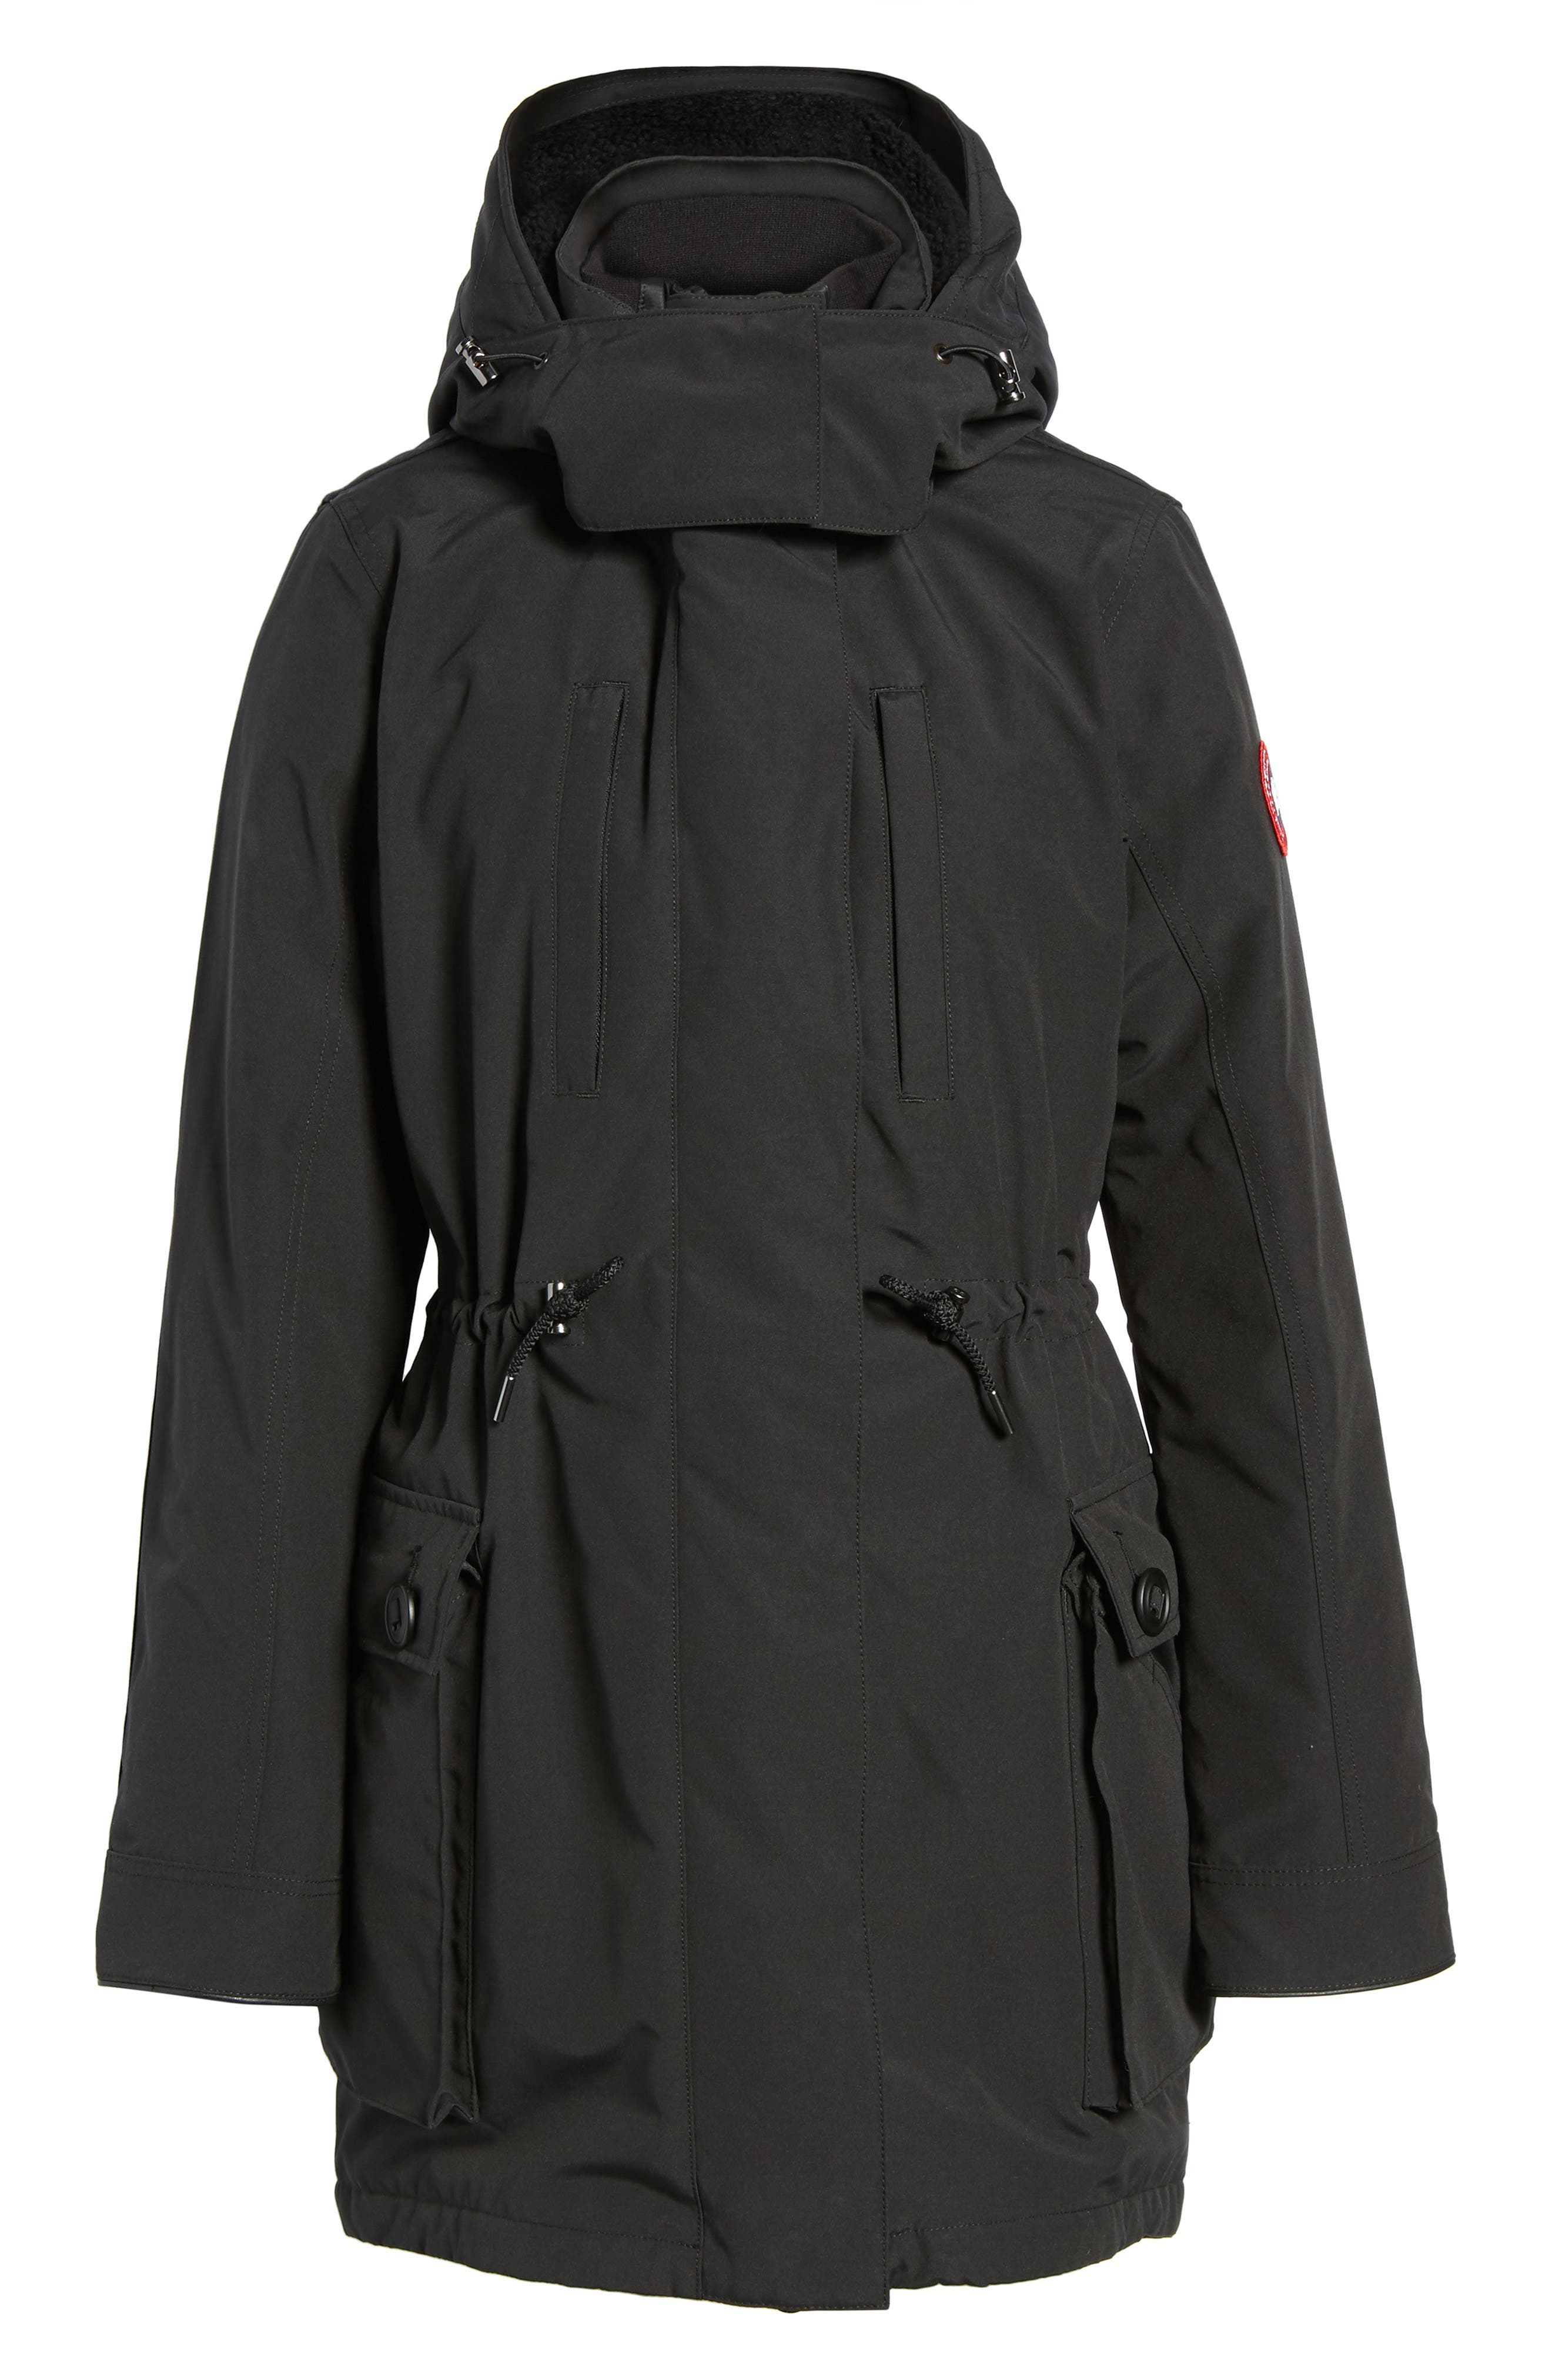 Perley Waterproof 675-Fill-Power Down 3-in-1 Parka,                             Alternate thumbnail 7, color,                             Black